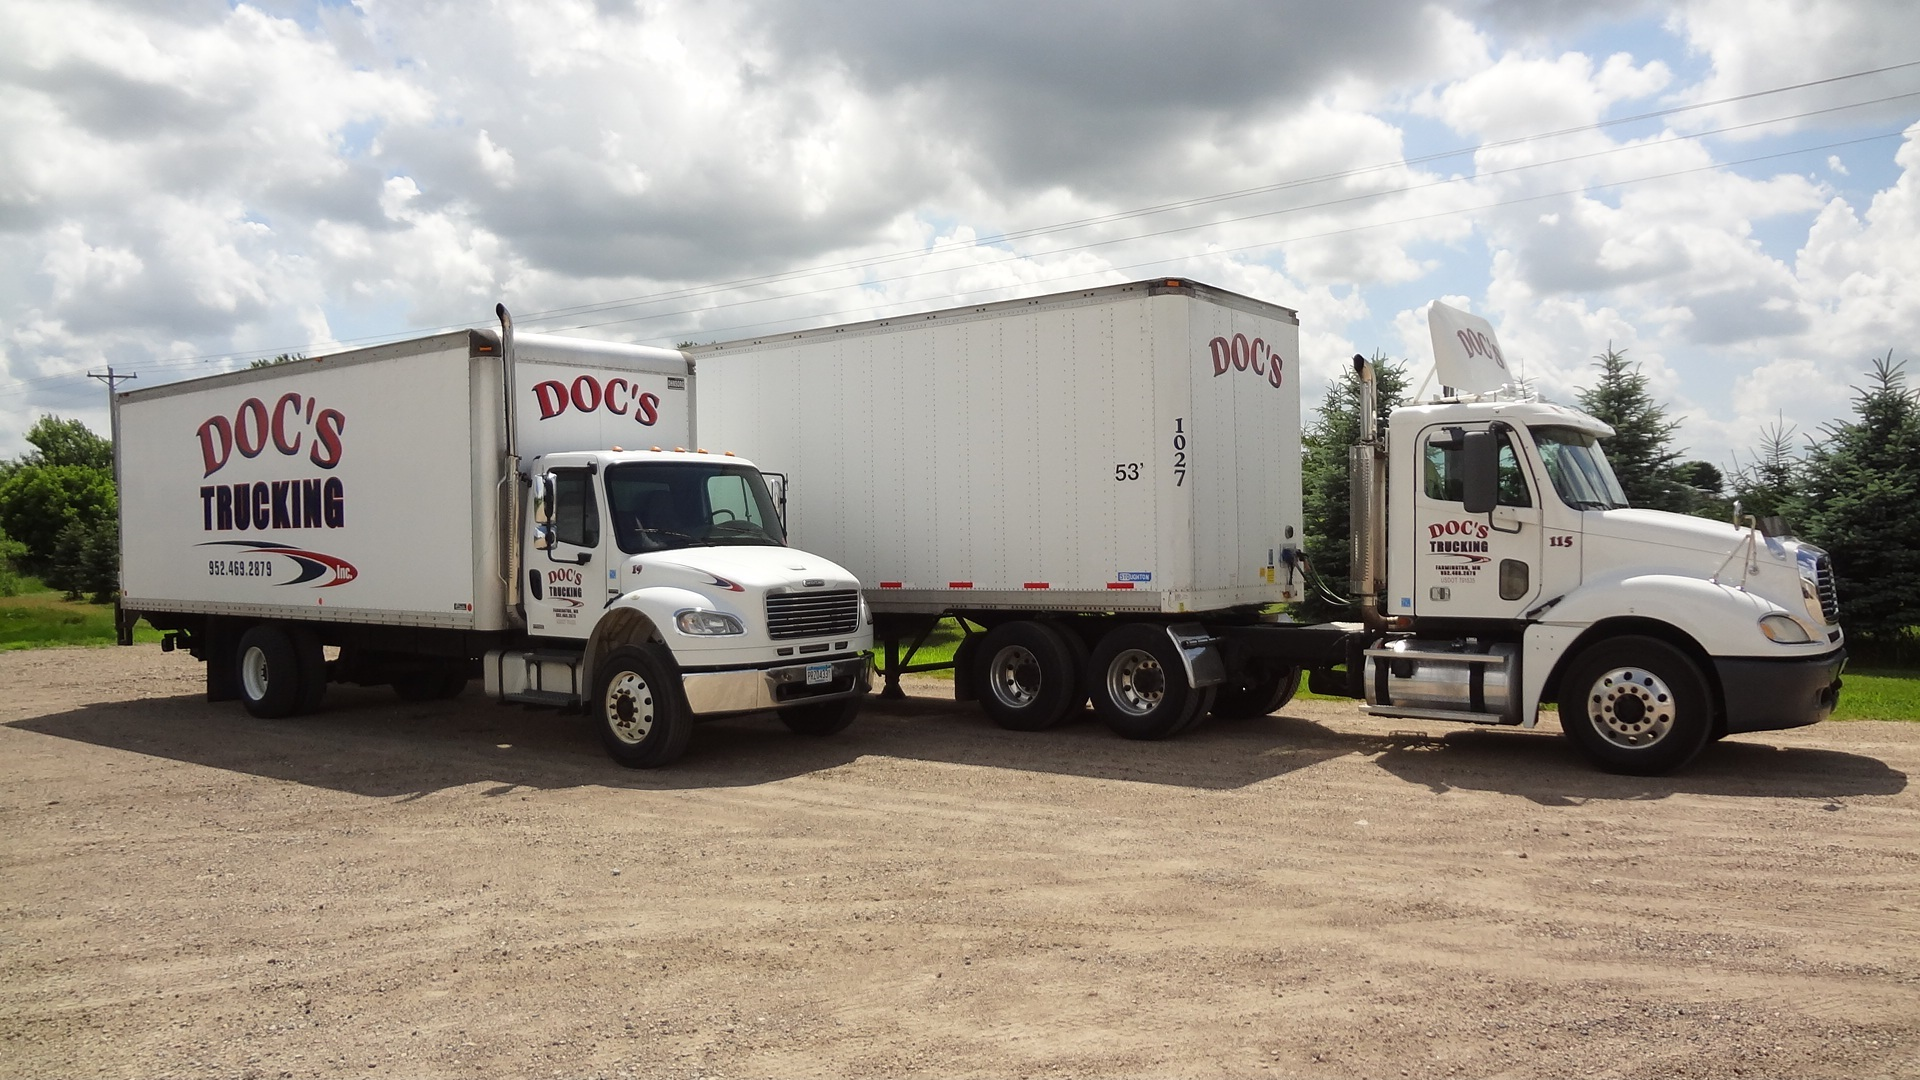 Straight truck and tractor with van trailer at Doc's Trucking in Minnesota